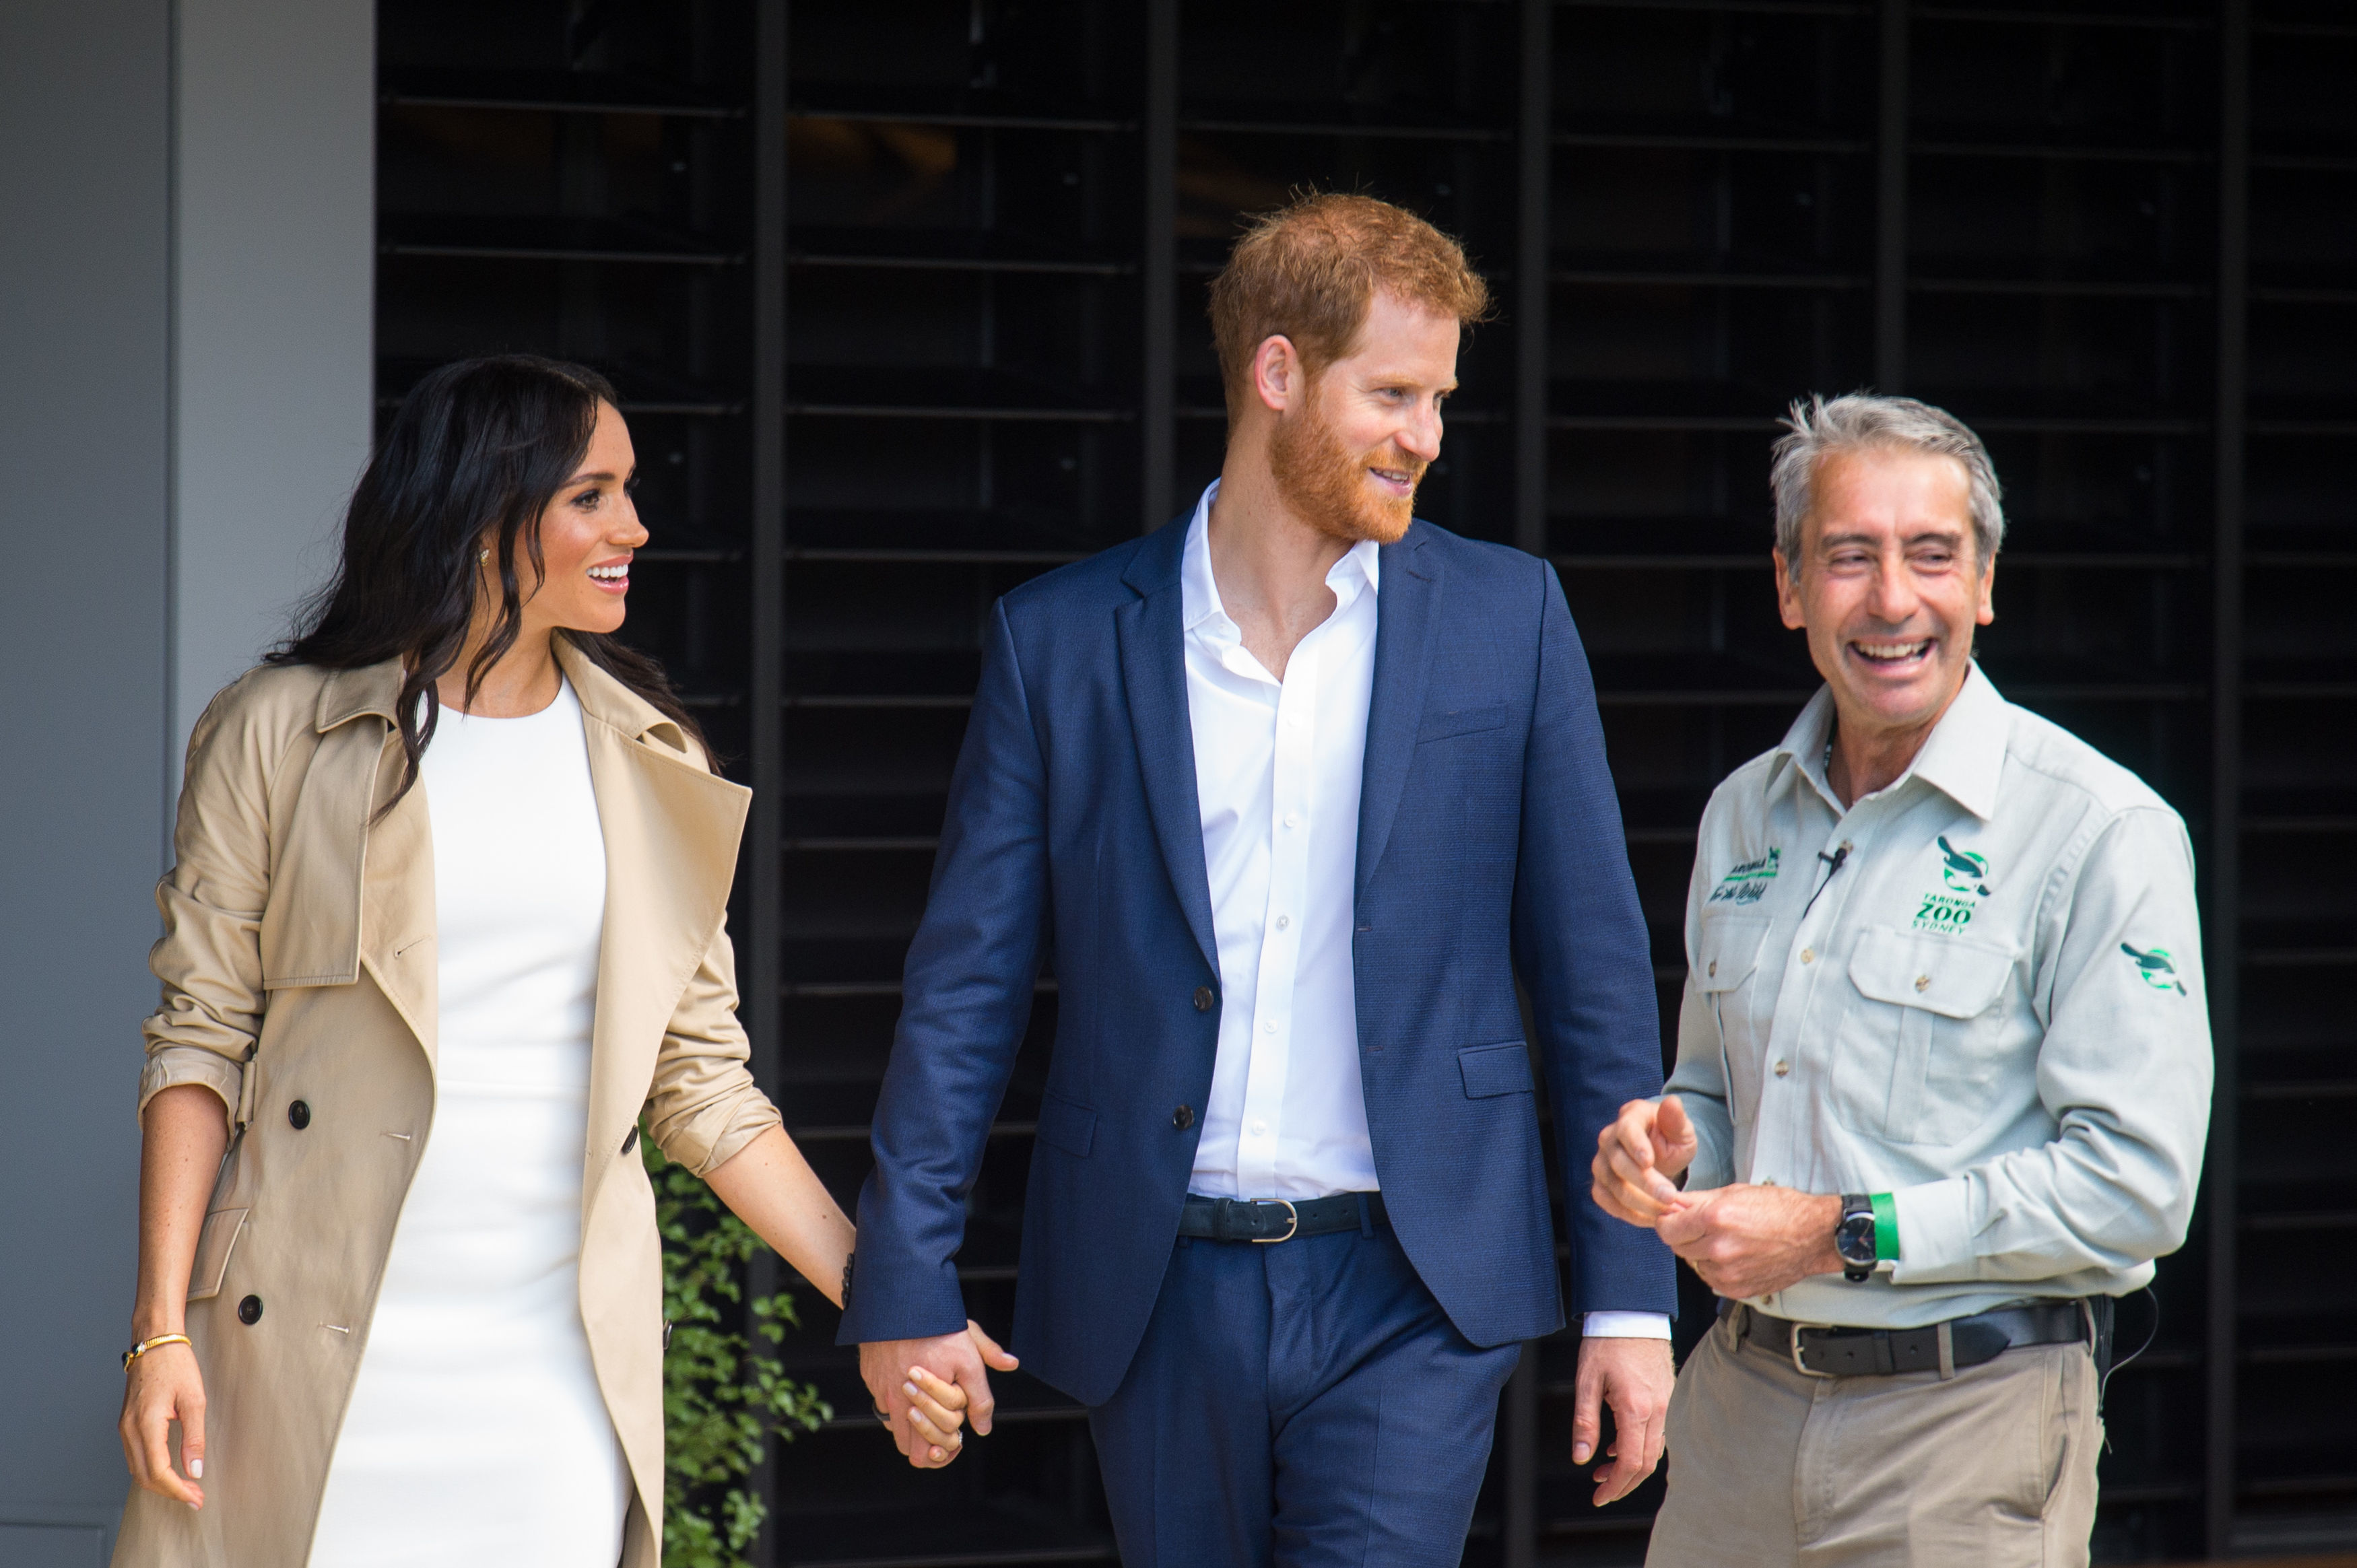 Prince Harry and Meghan Markle's royal tour